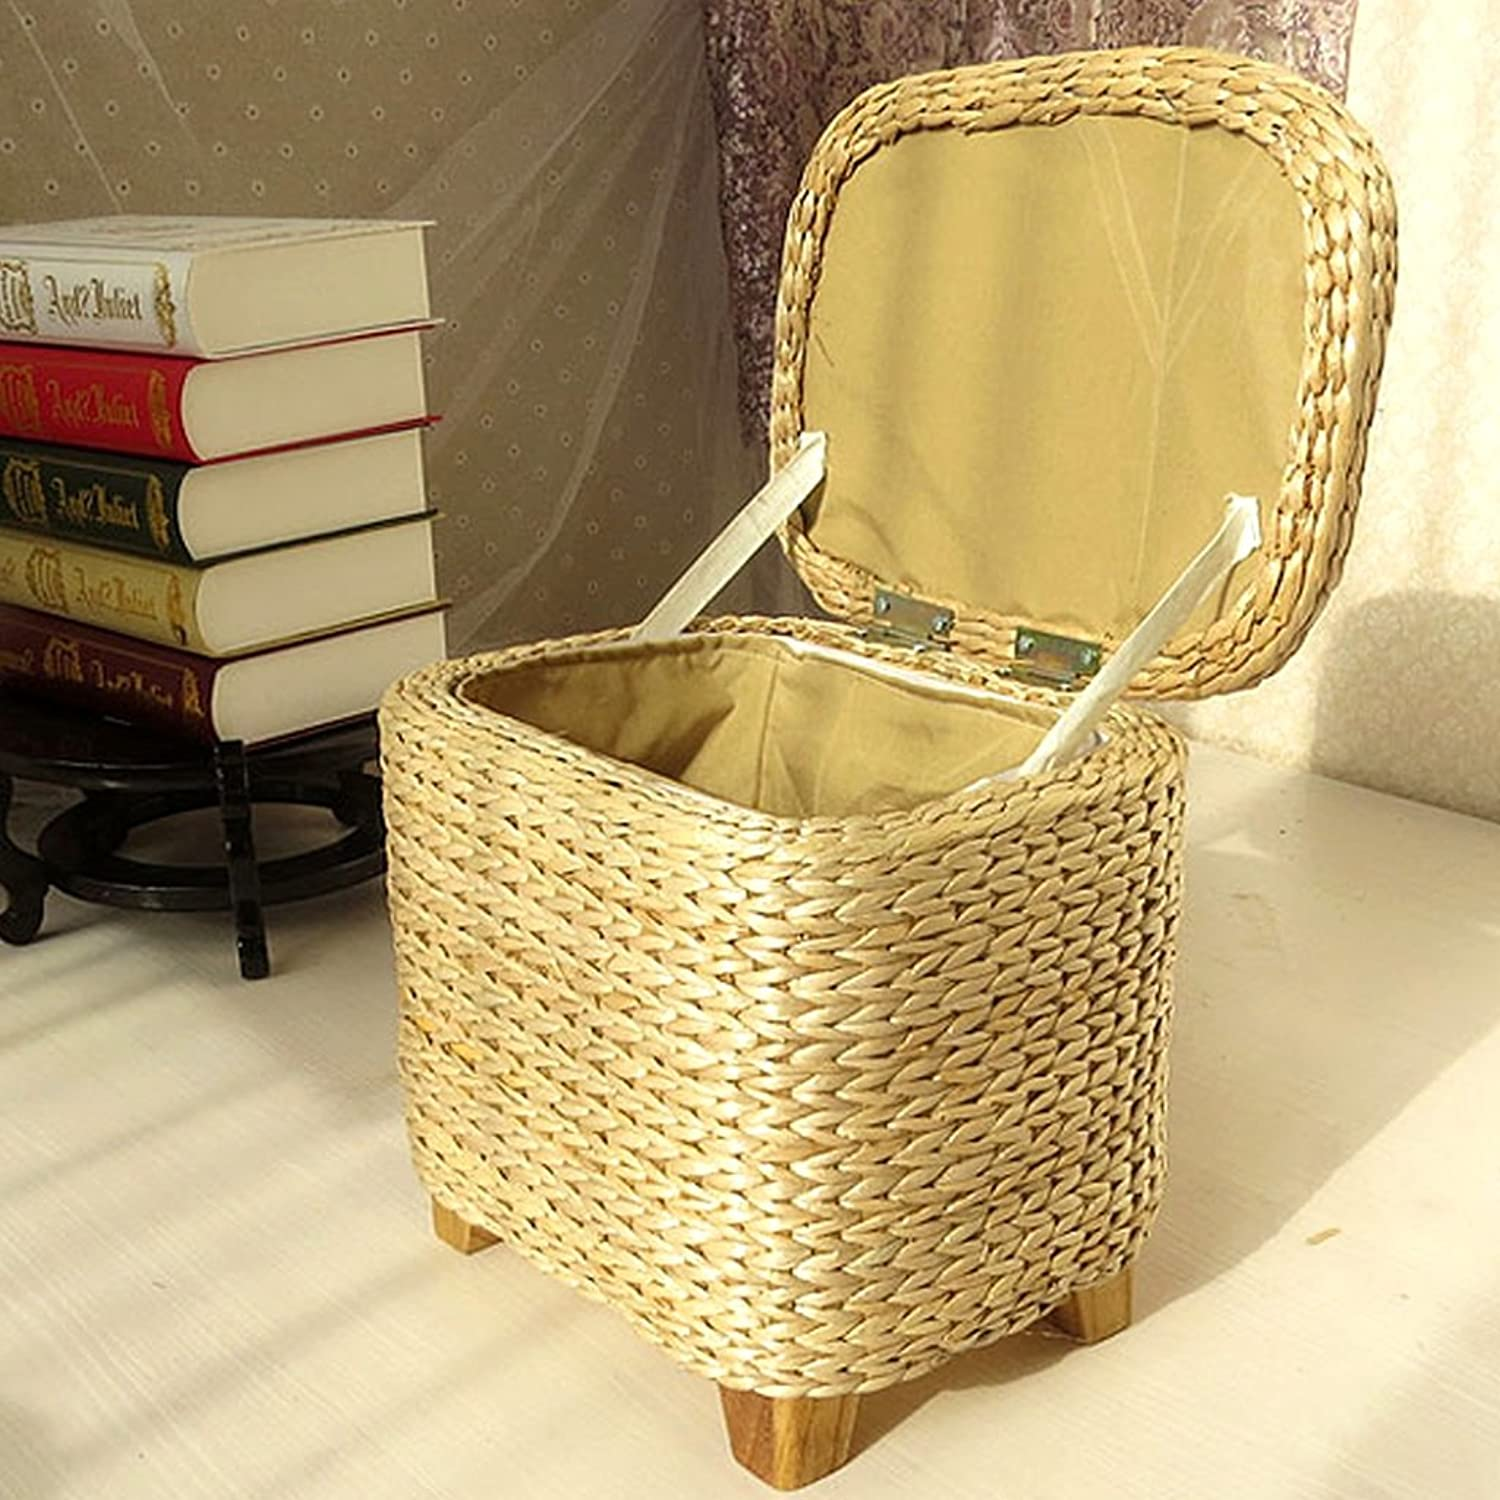 Storage Stool Storage Stool Solid Wood shoes shoes Stool Storage Stool Sofa Stool Handmade Rattan Grass Preparation Toy Finishing seat Box can sit People